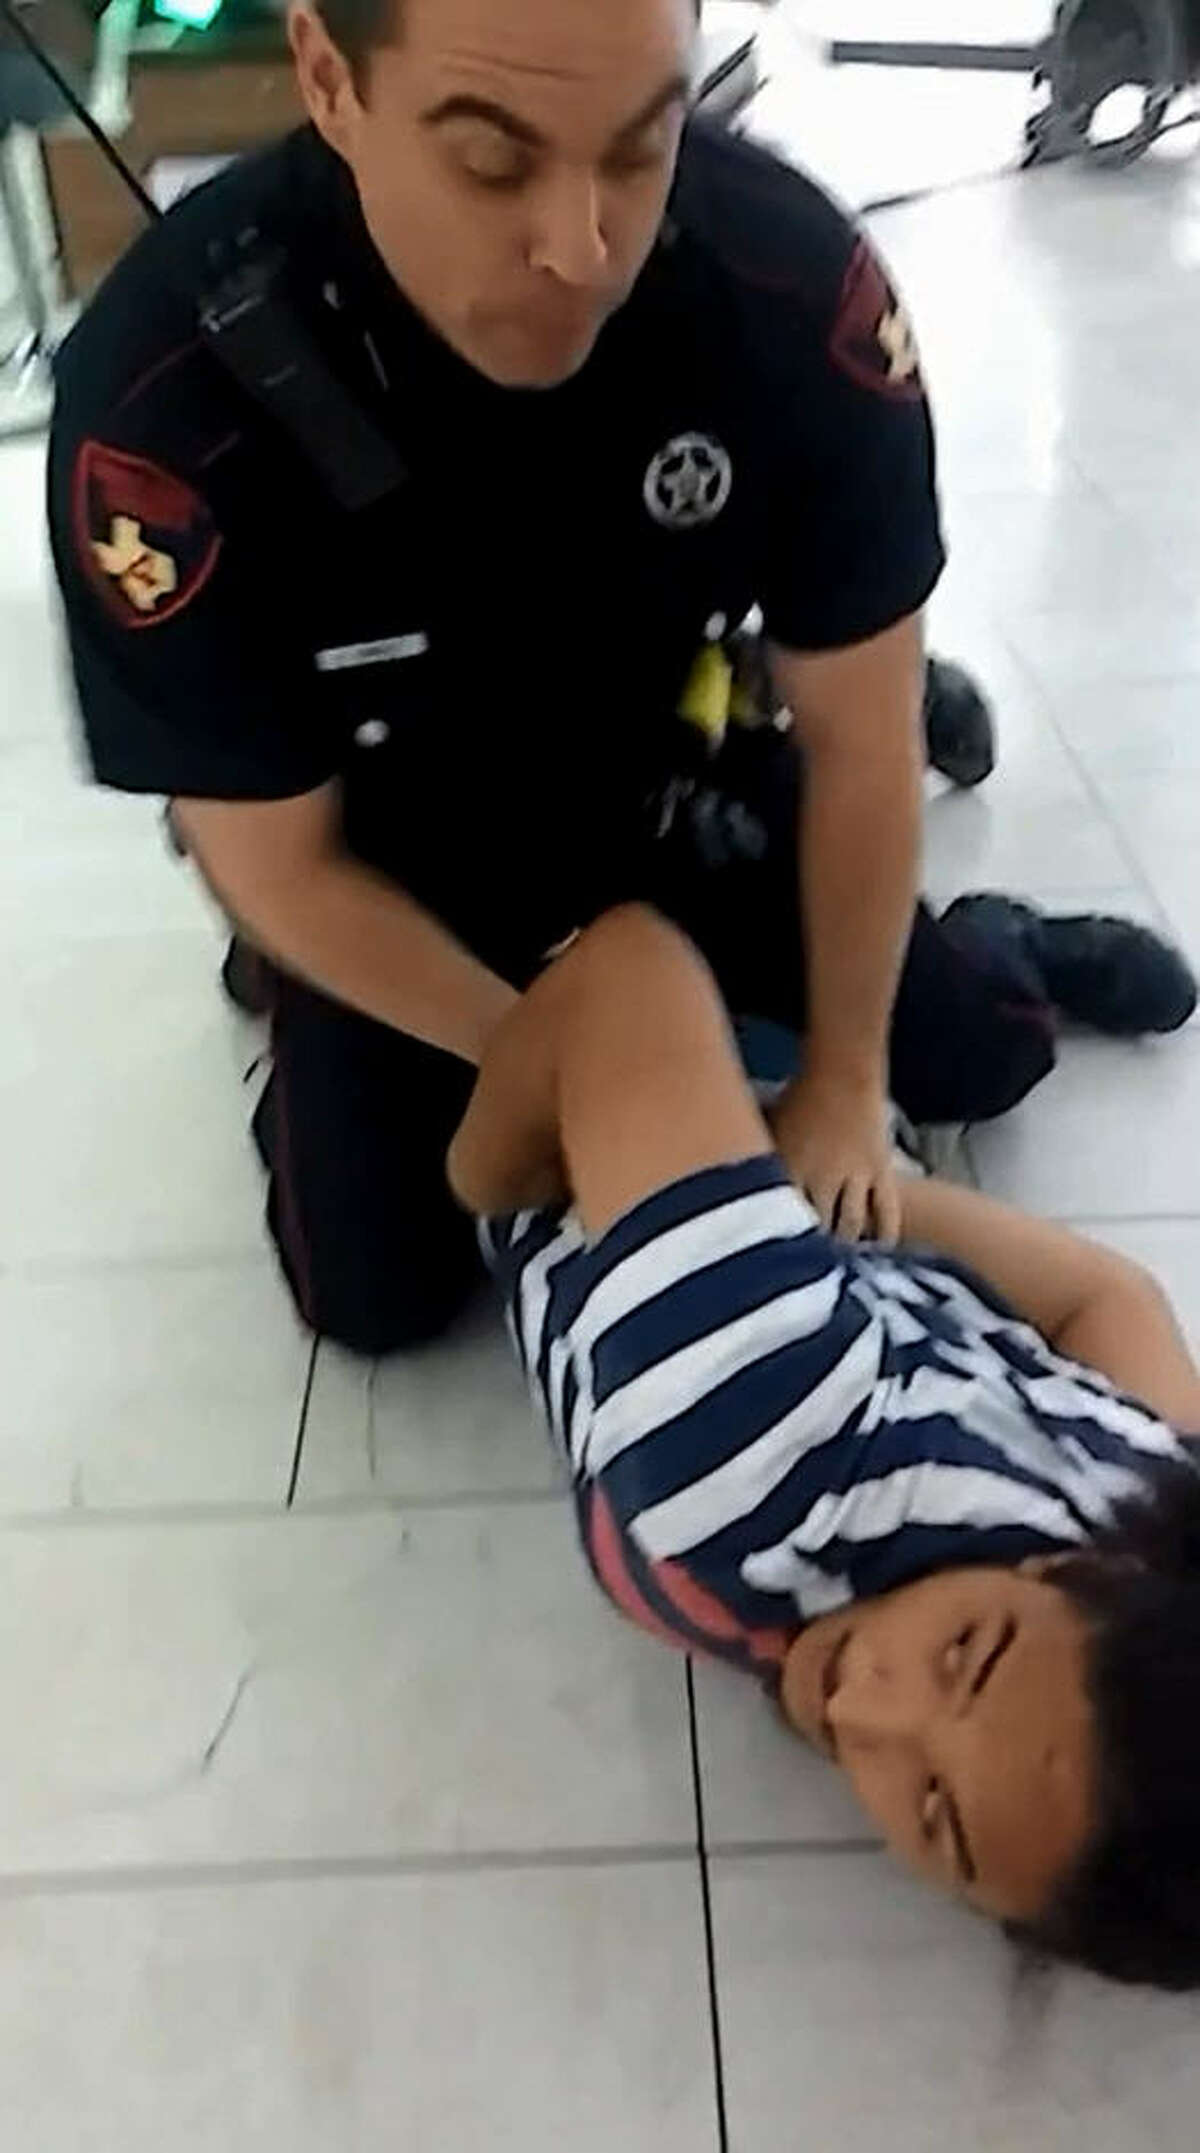 Jesse Valdez was detained Sept. 19 at Willowbrook Mall in Houston for riding a skateboard-like device through the shopping area, and later charged with disorderly conduct and resisting arrest. The incident was captured on tape by others in the mall who questioned why Valdez was detained, handcuffed, arrested and had a taser pointed at him for seemingly a minor offense.